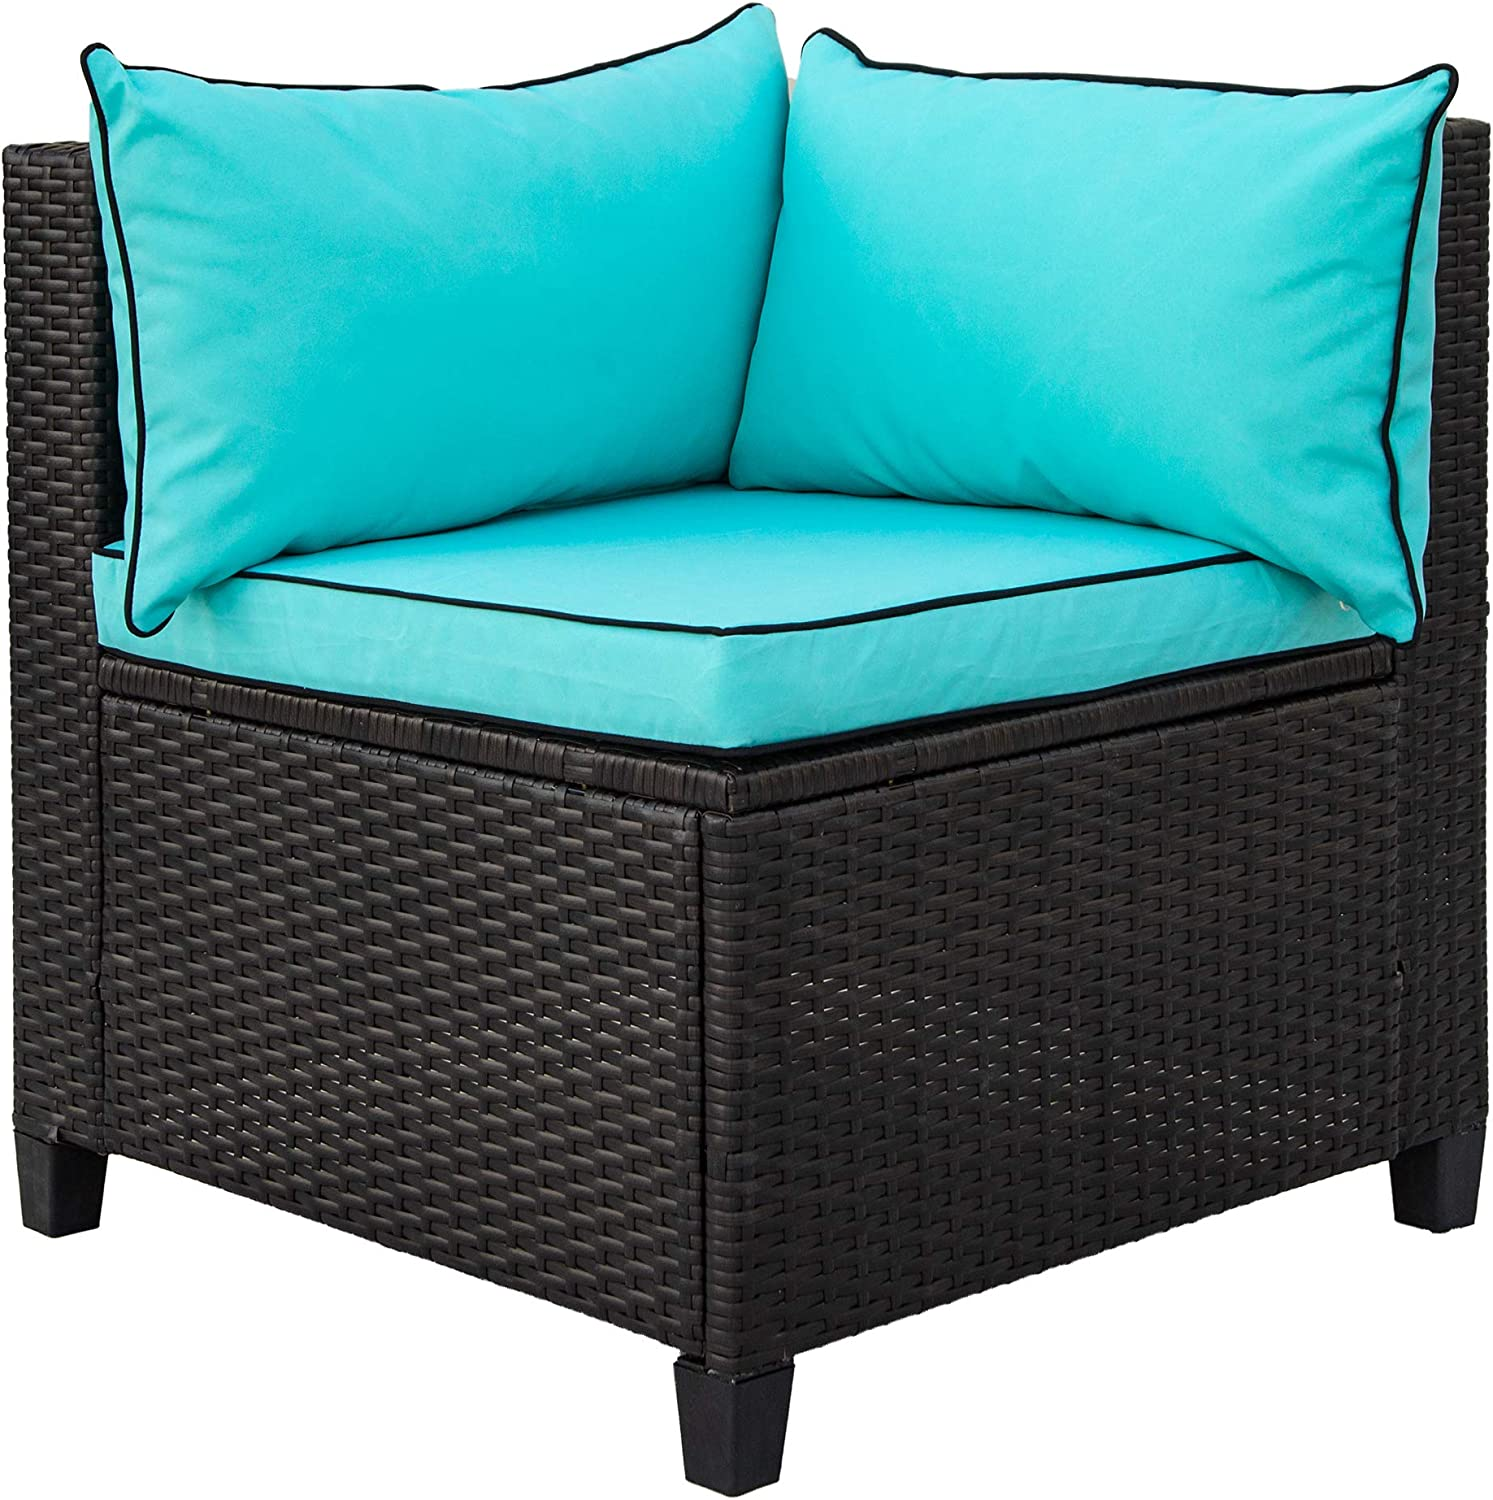 Beige U-Shape Outdoor Patio Furniture Sectional Sofa Furniture Set with Cushions and Accent Pillows Flieks Rattan Wicker Patio Sofa Set